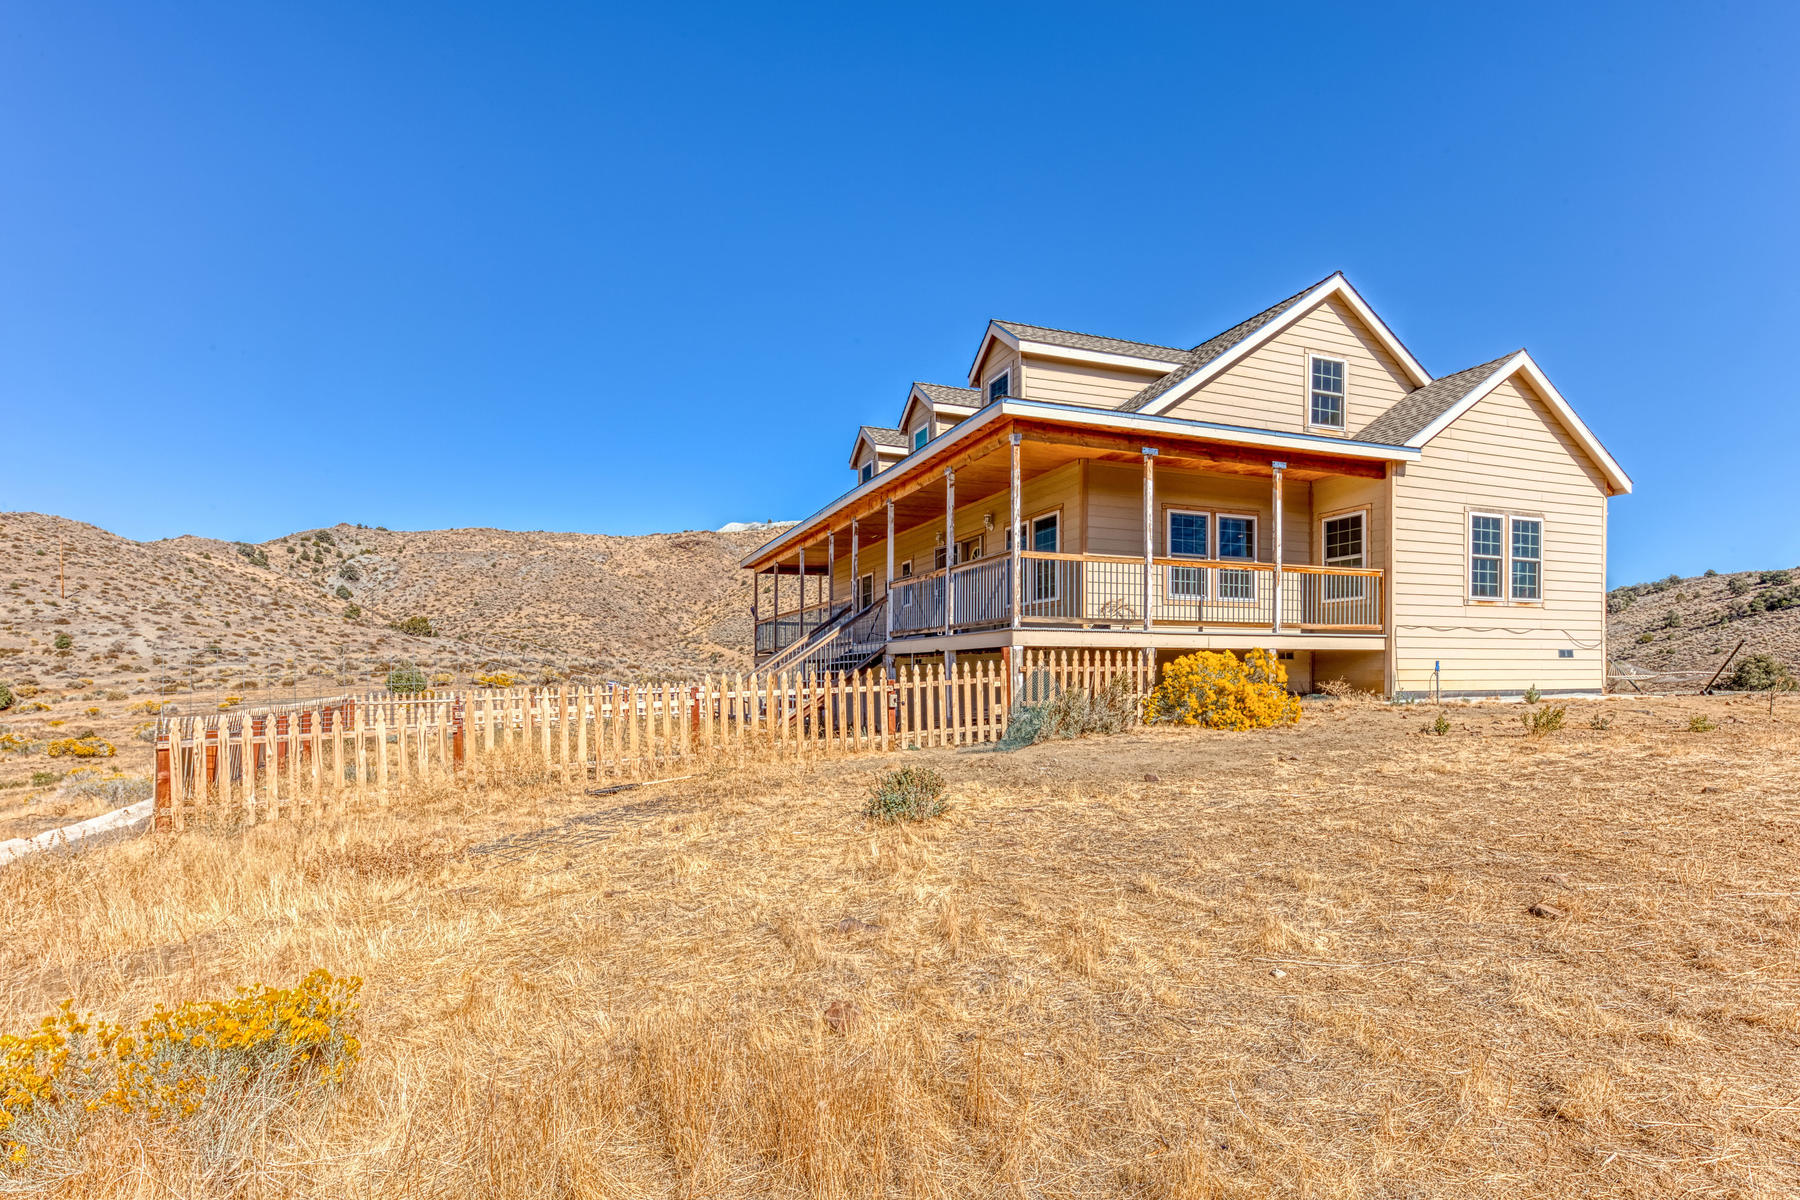 Property for Active at 2850 Slippery Gulch, Virginia City, Nevada 2850 Slippery Gulch Virginia City, Nevada 89440 United States